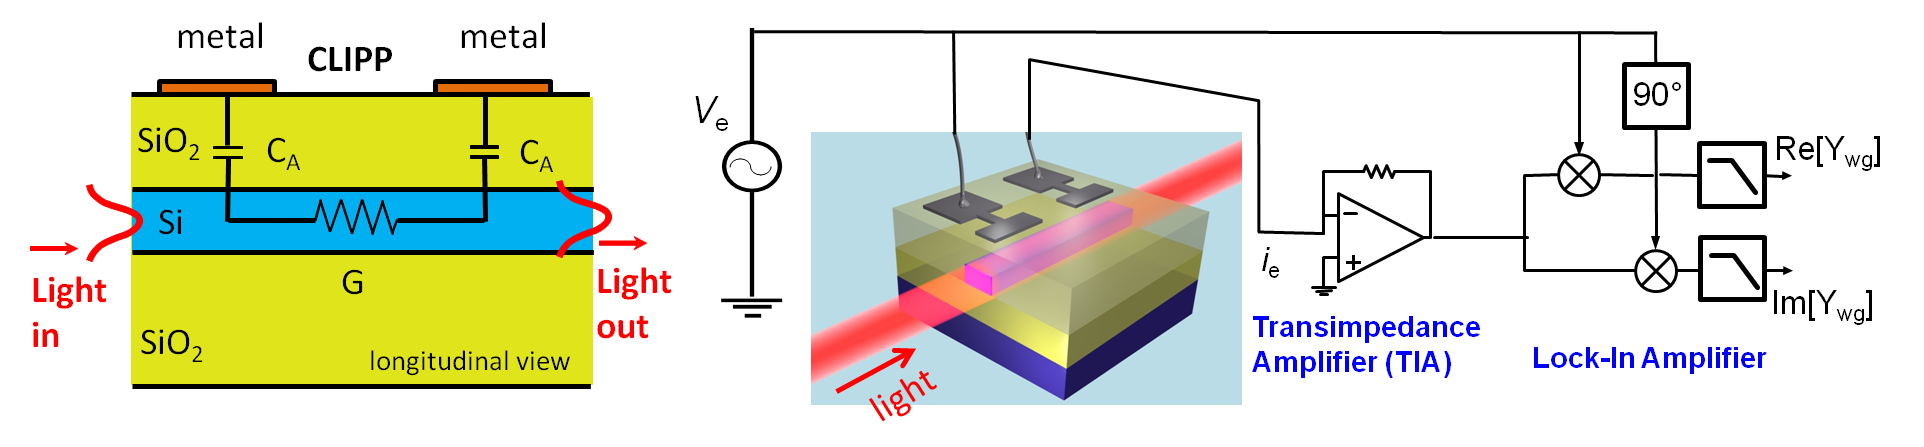 Non Invasive Light Observation Photonic Devices Group Transimpedance Amplifiers Information Engineering360 Clipp Concept